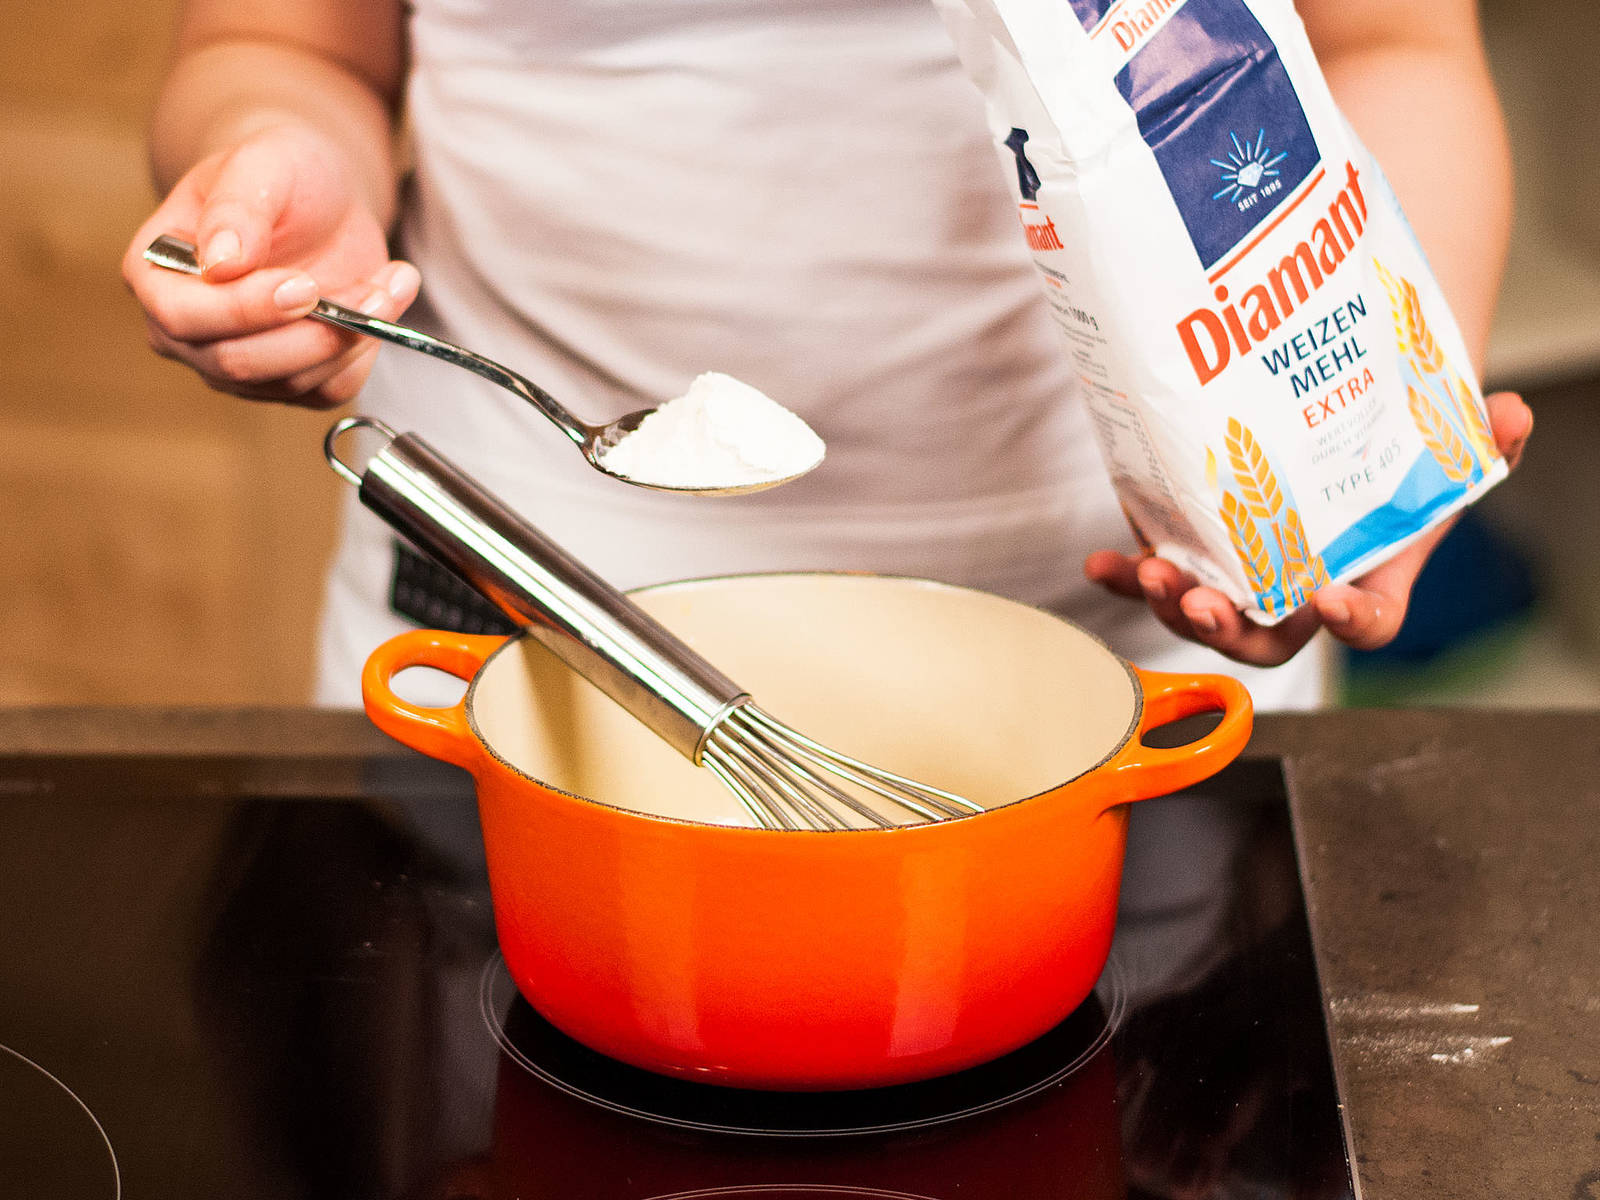 Prepare a roux for the cream sauce. Melt butter in a saucepan, add flour, and stir constantly until there are no more lumps.